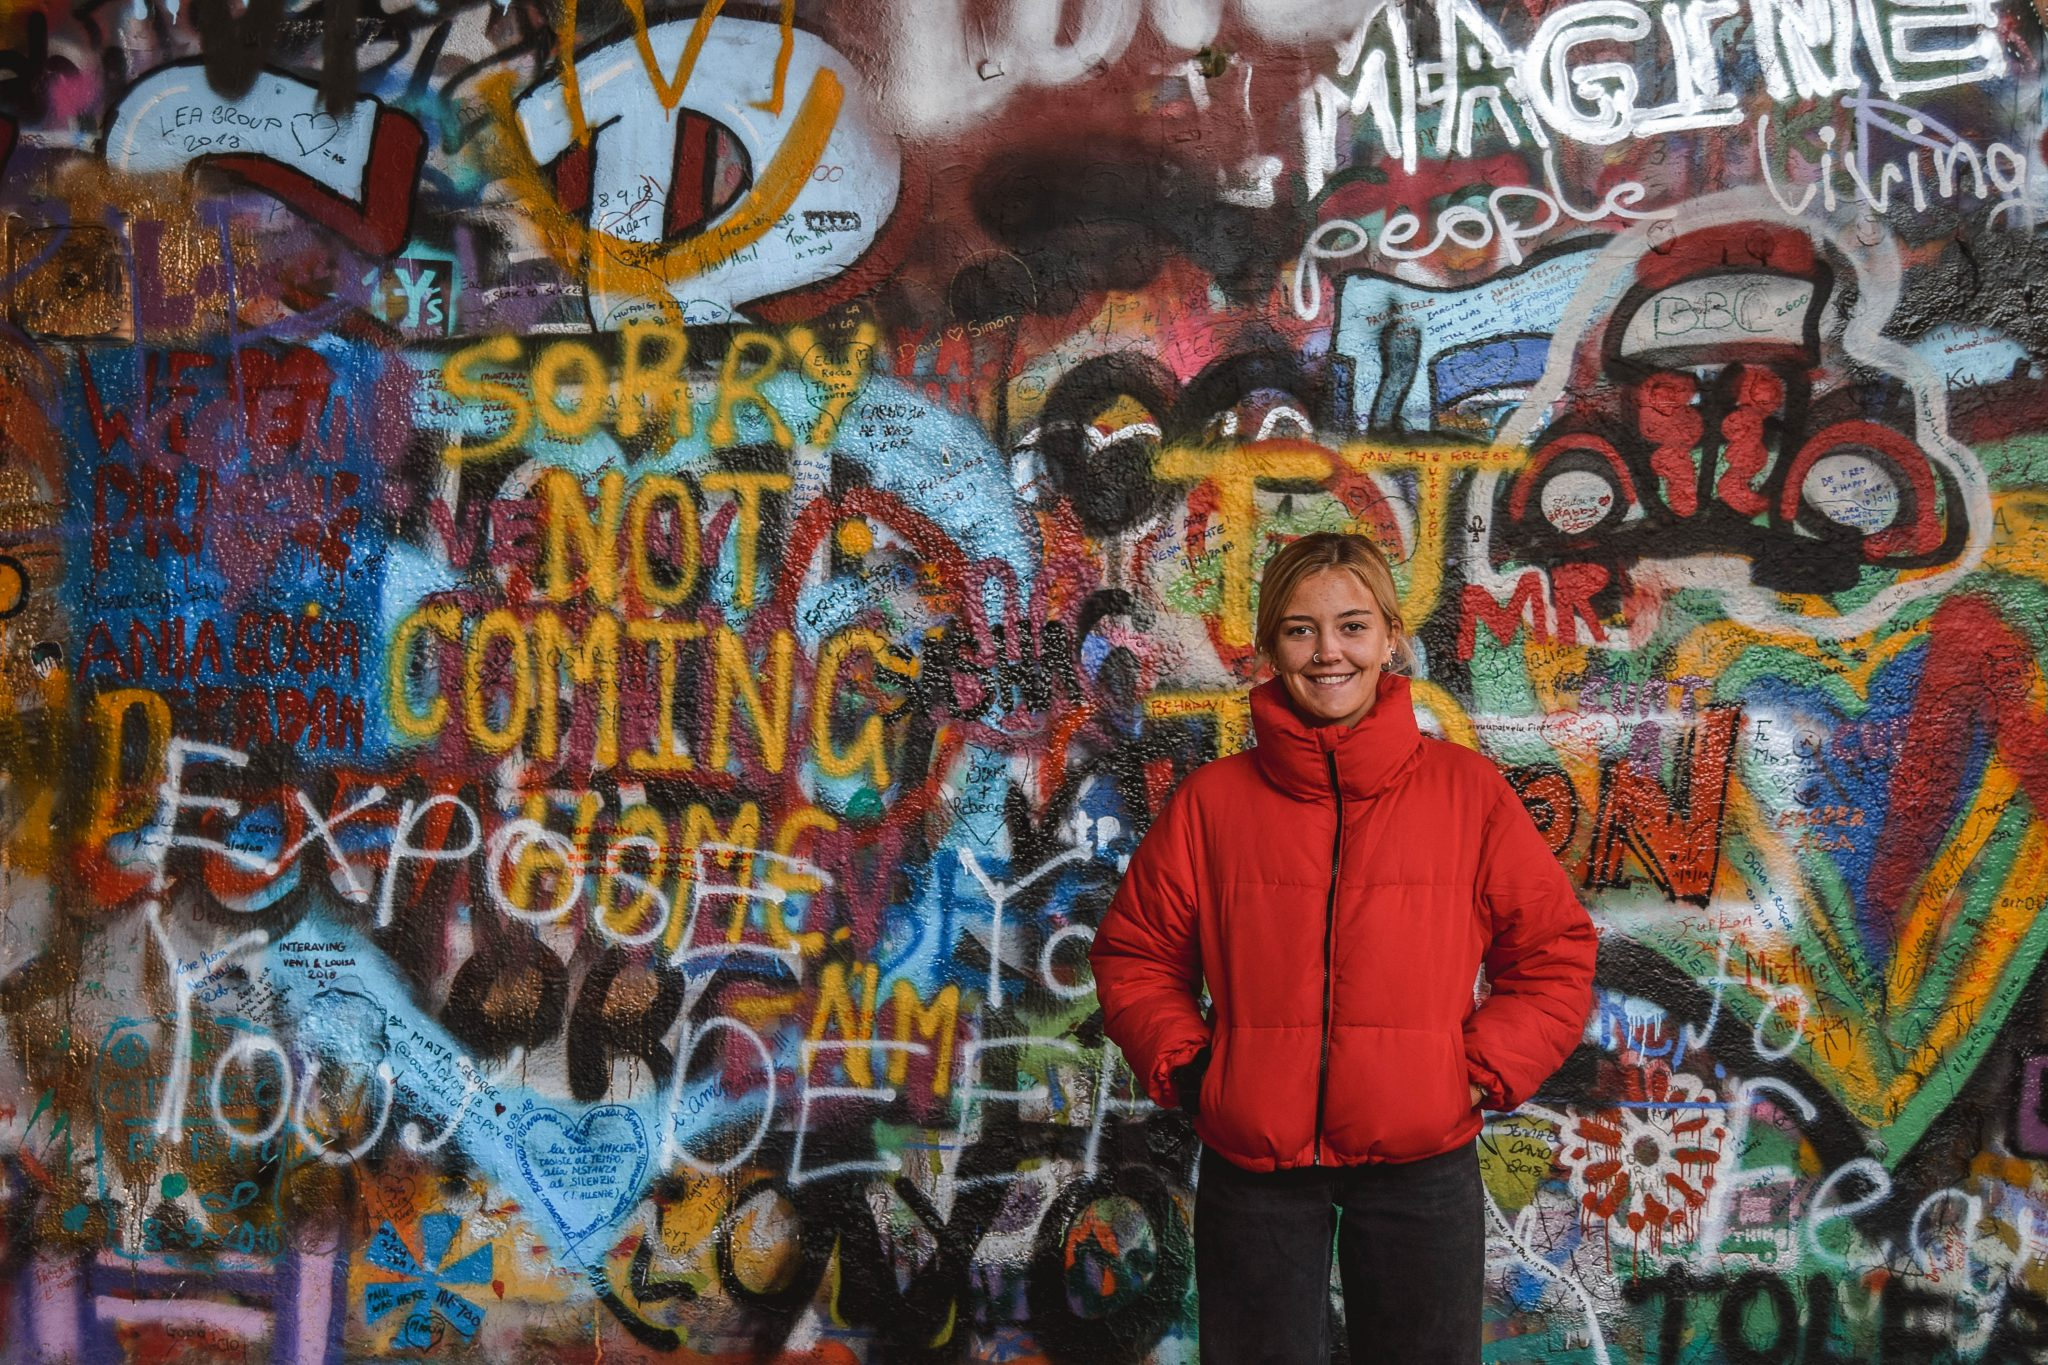 Wanderers & Warriors - Charlie & Lauren UK Travel Couple - Top 9 FUN Things To Do In Prague - What To See In Prague John Lennon Wall